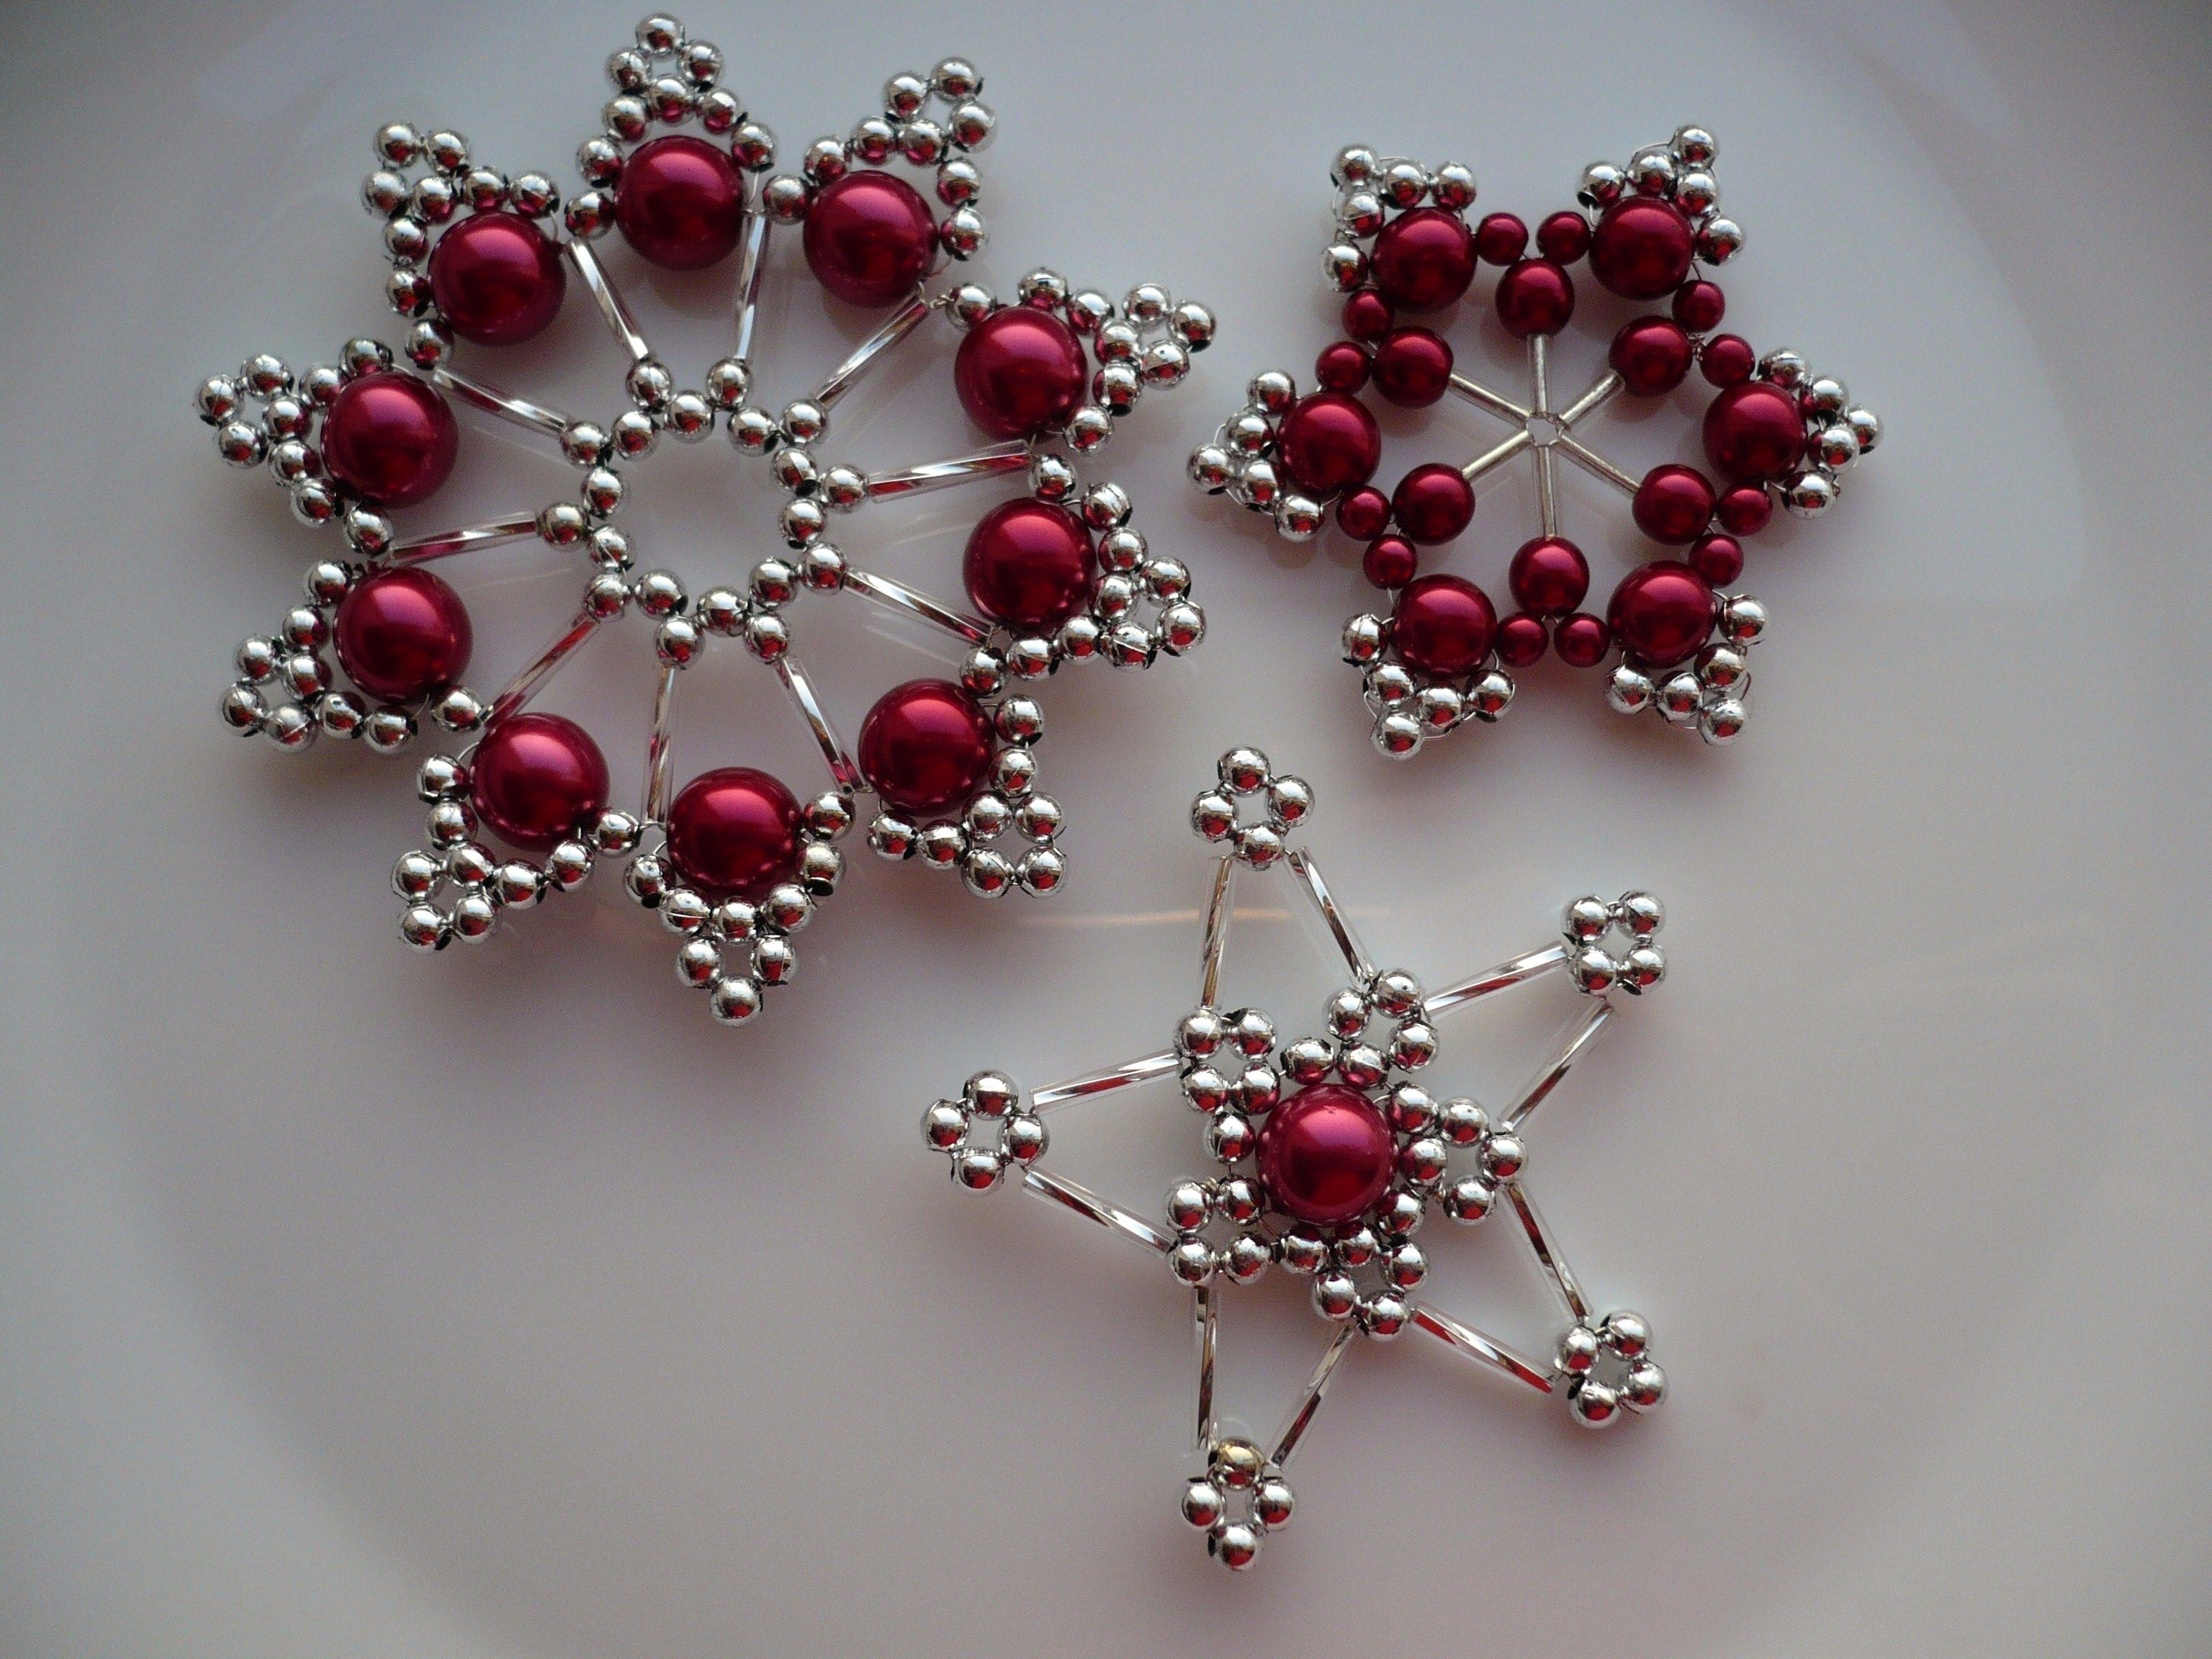 Handmade christmas ornaments with beads - How To Make Beaded Christmas Ornaments Christmas Ornaments Beaded Ornaments Pinterest